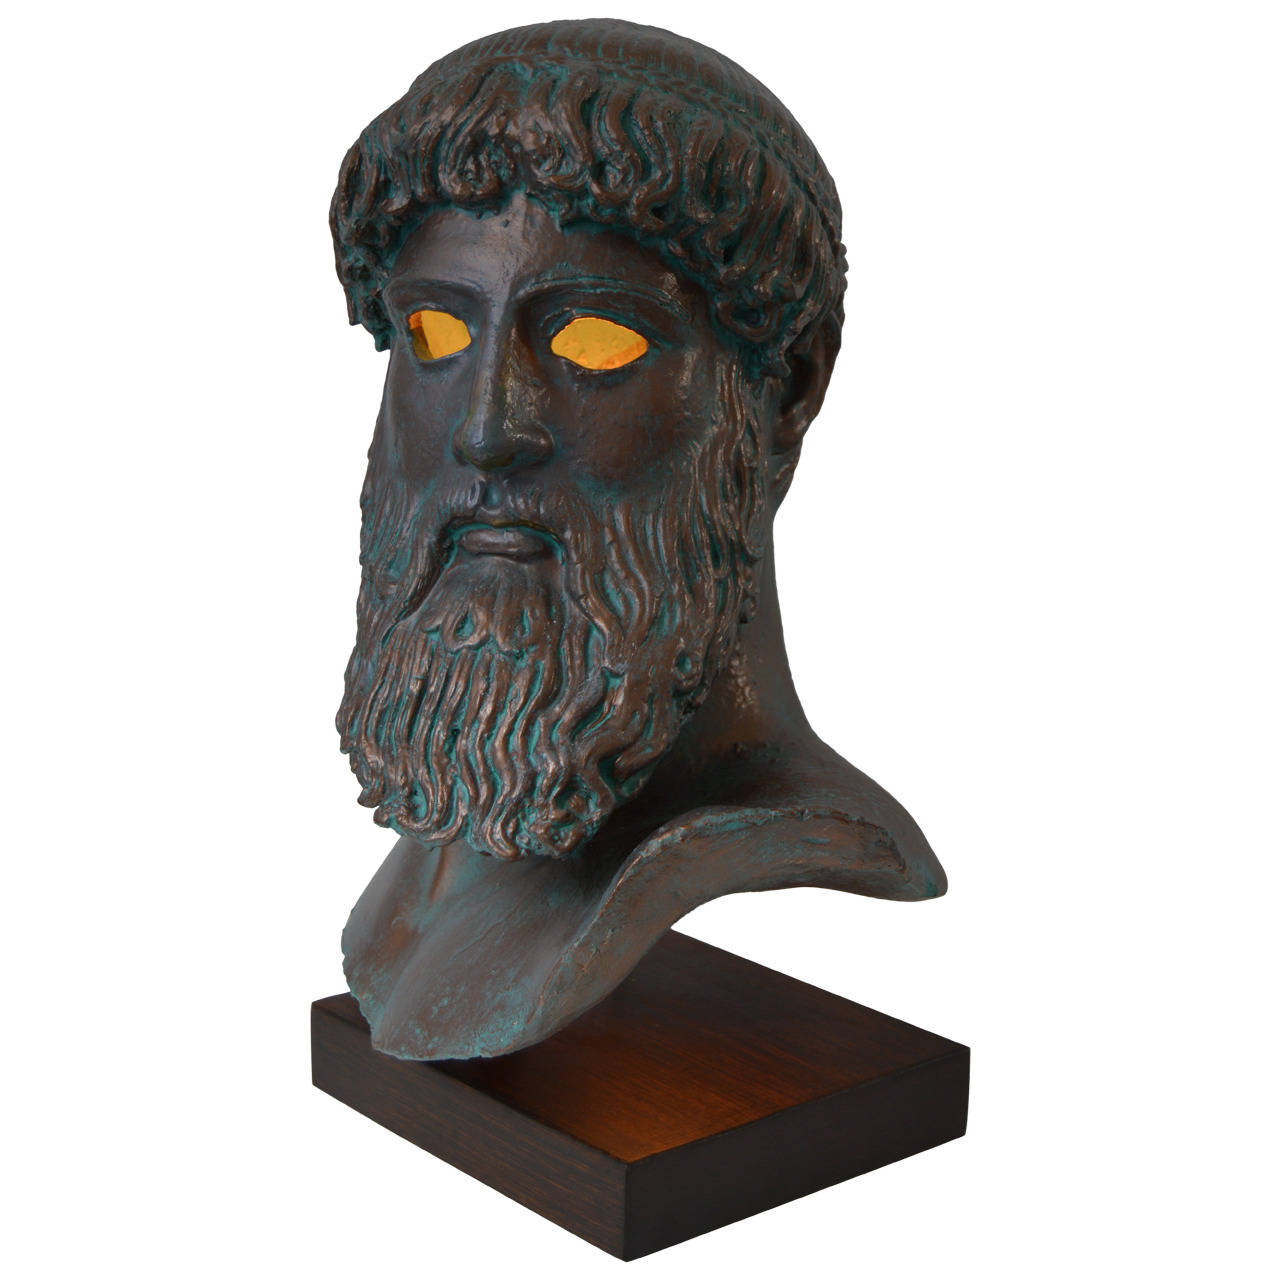 Illuminated Bust of Promethius